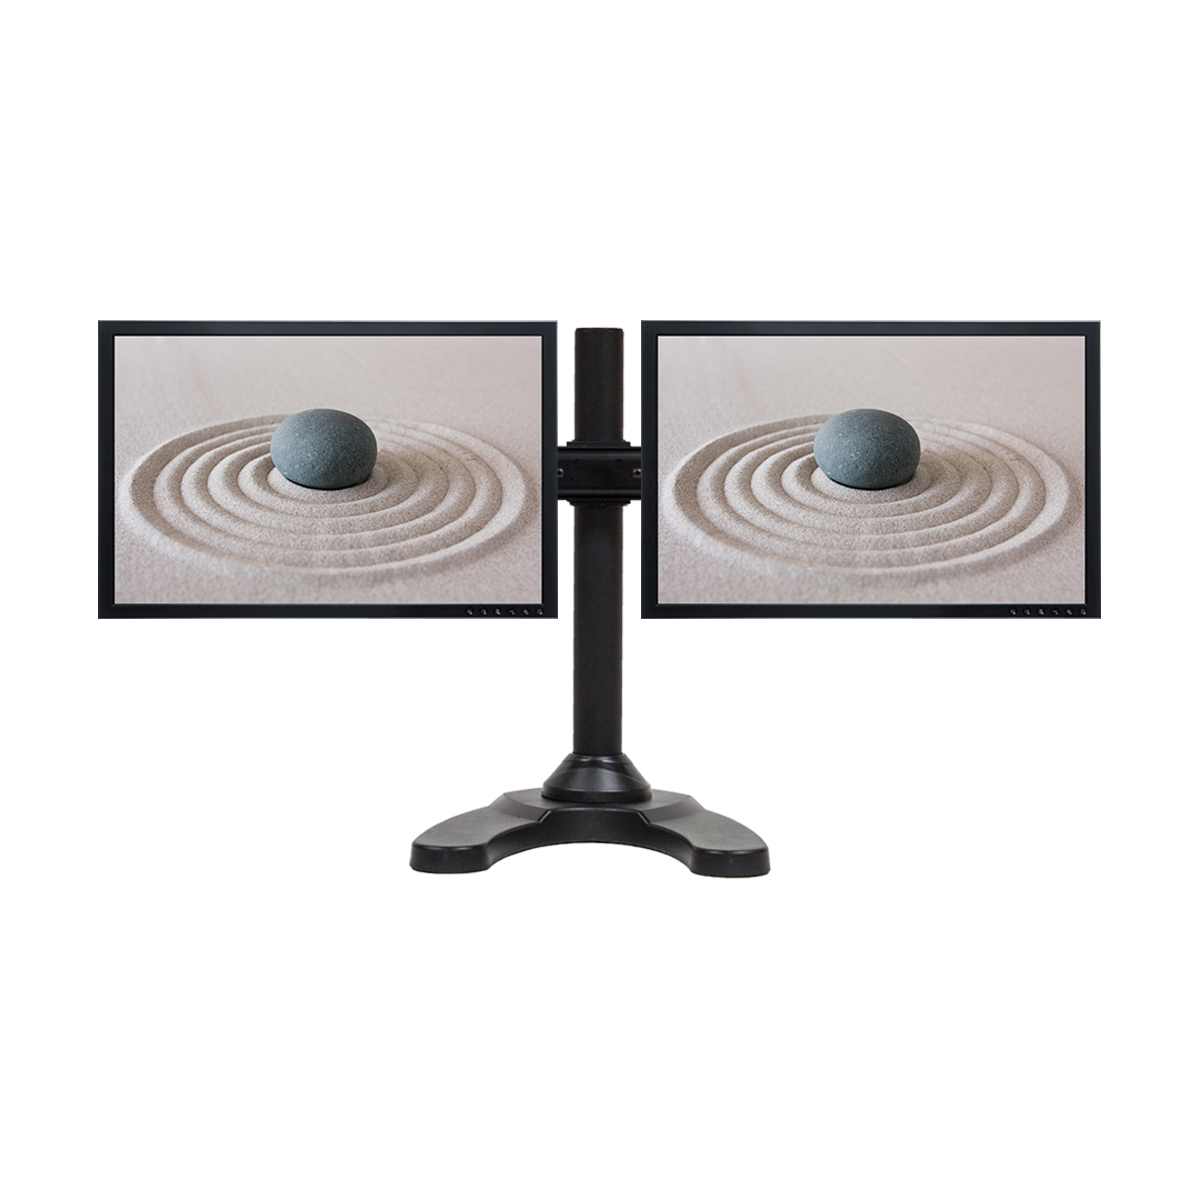 dual lcd 2 monitor stand desk mount adjustable curved free standing up to 28 ebay. Black Bedroom Furniture Sets. Home Design Ideas